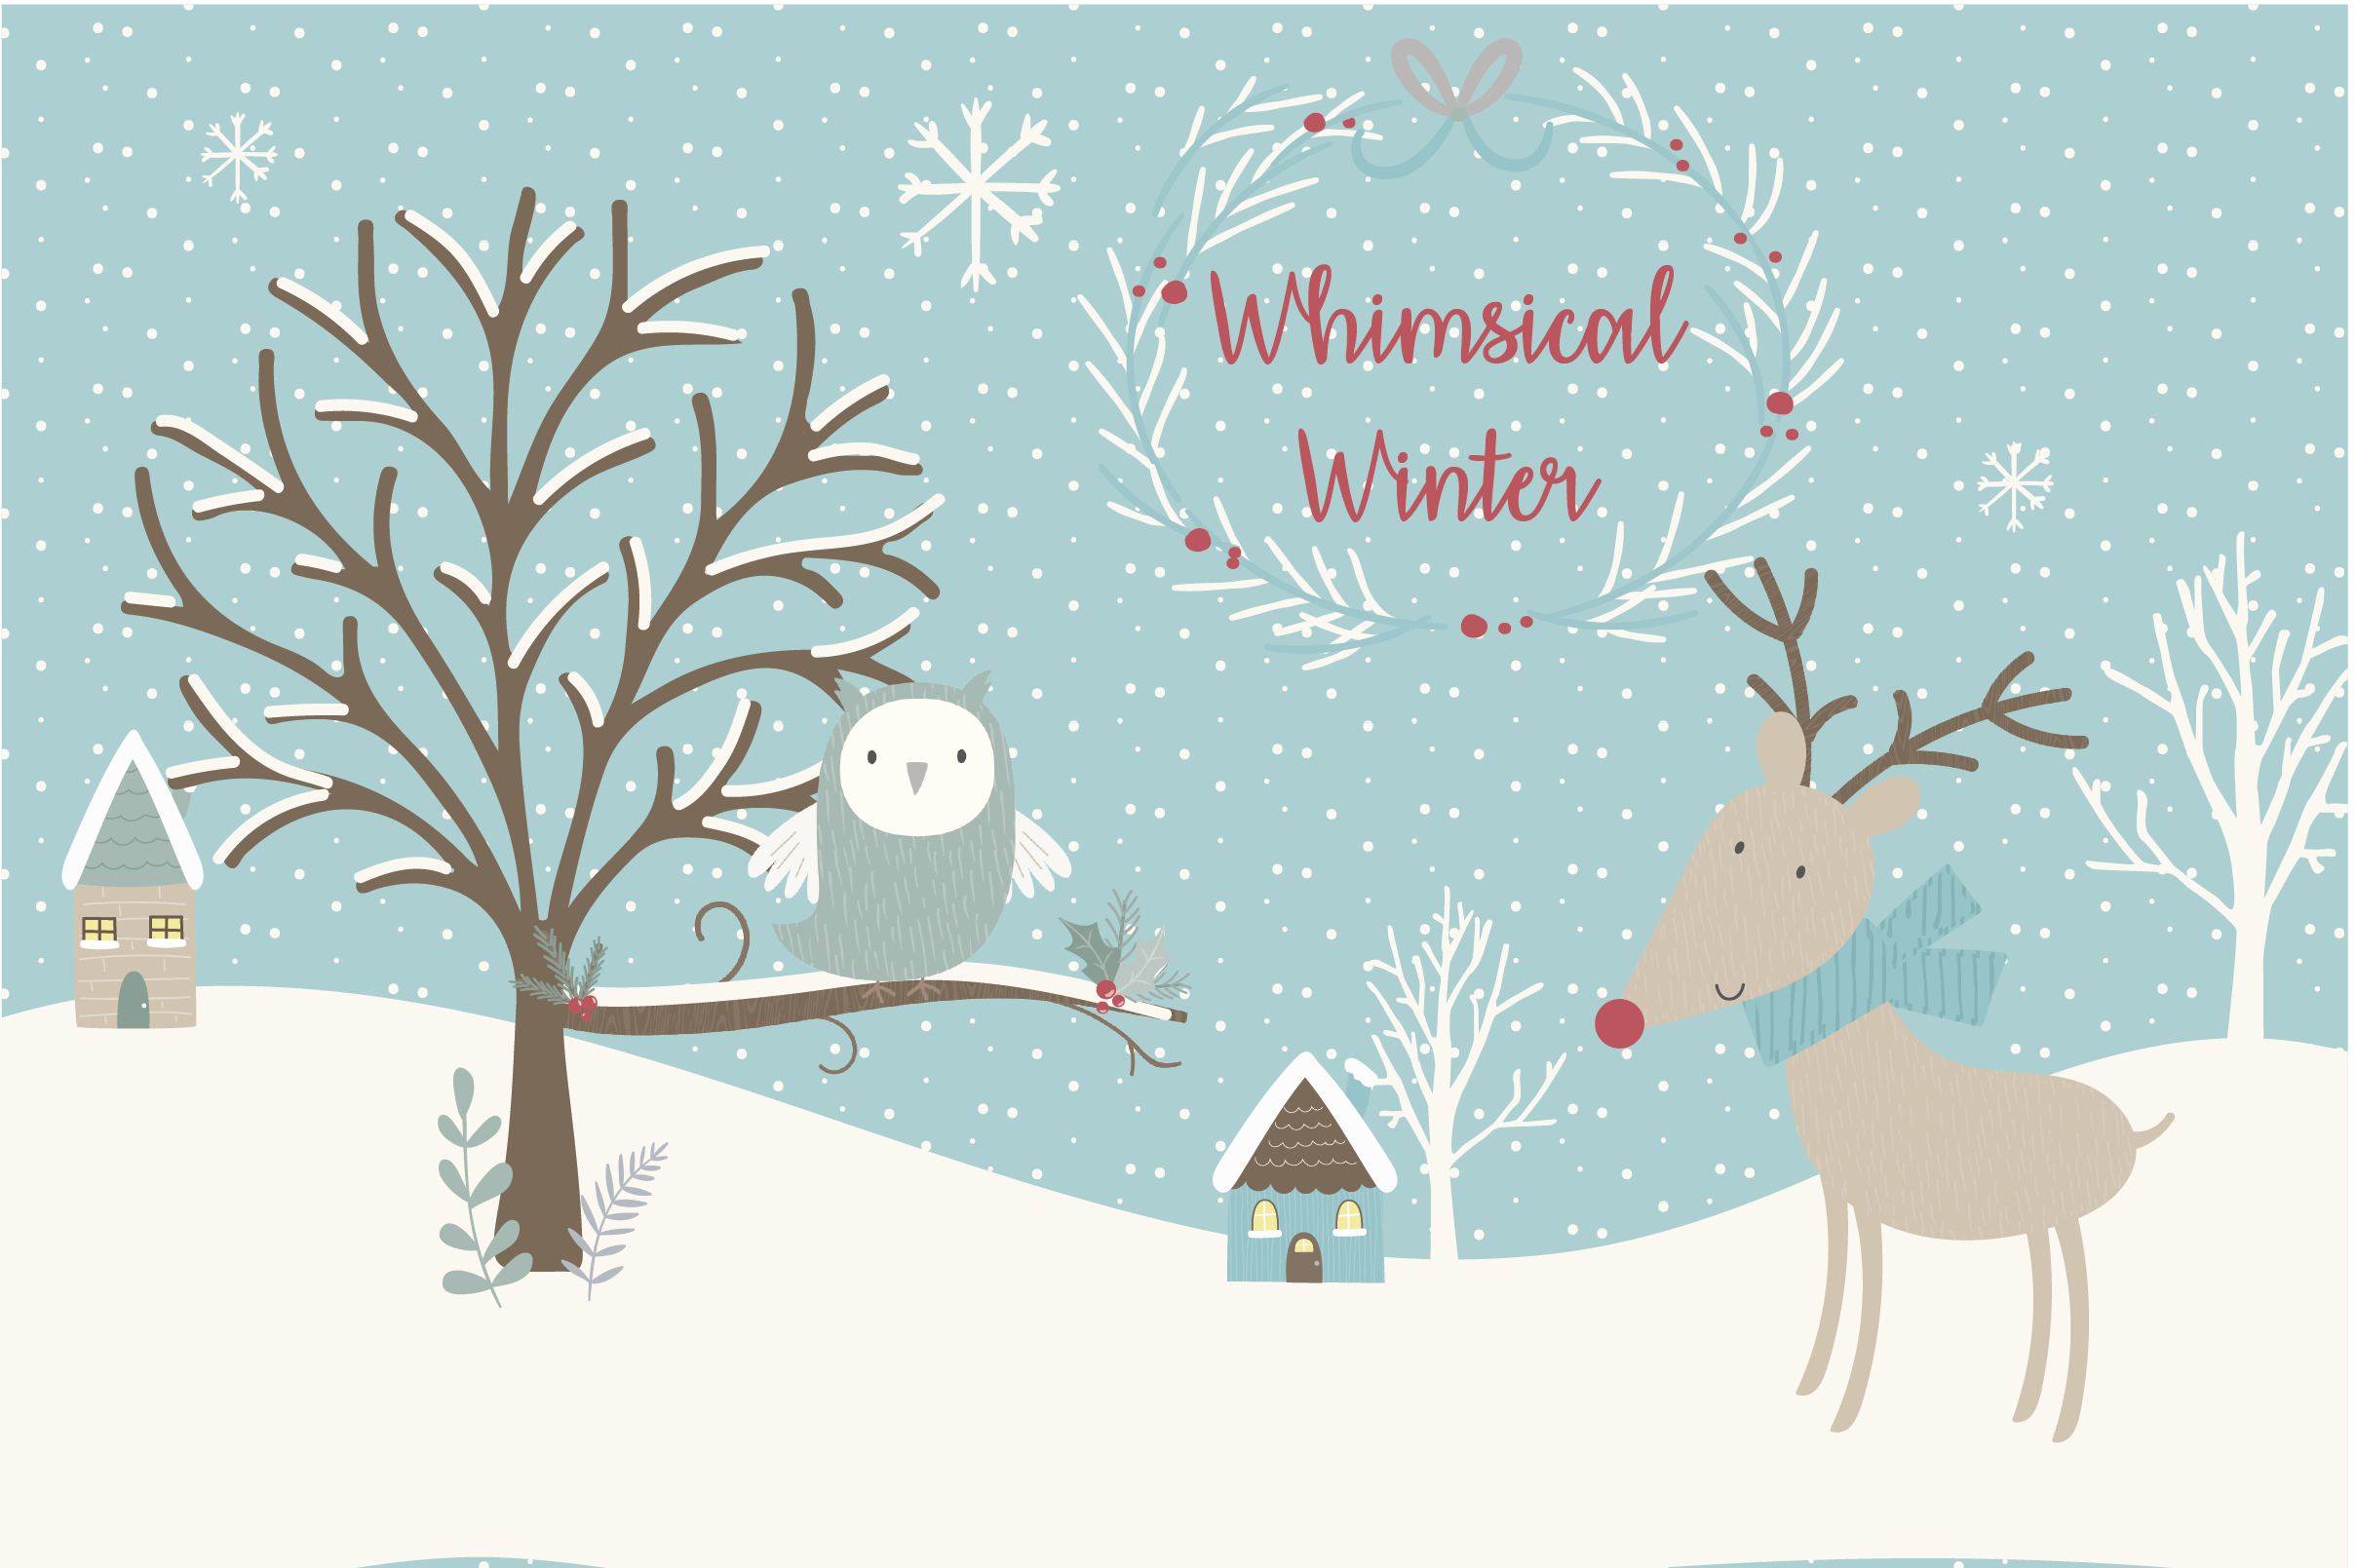 Winter clipart teal. Sale now only whimsical